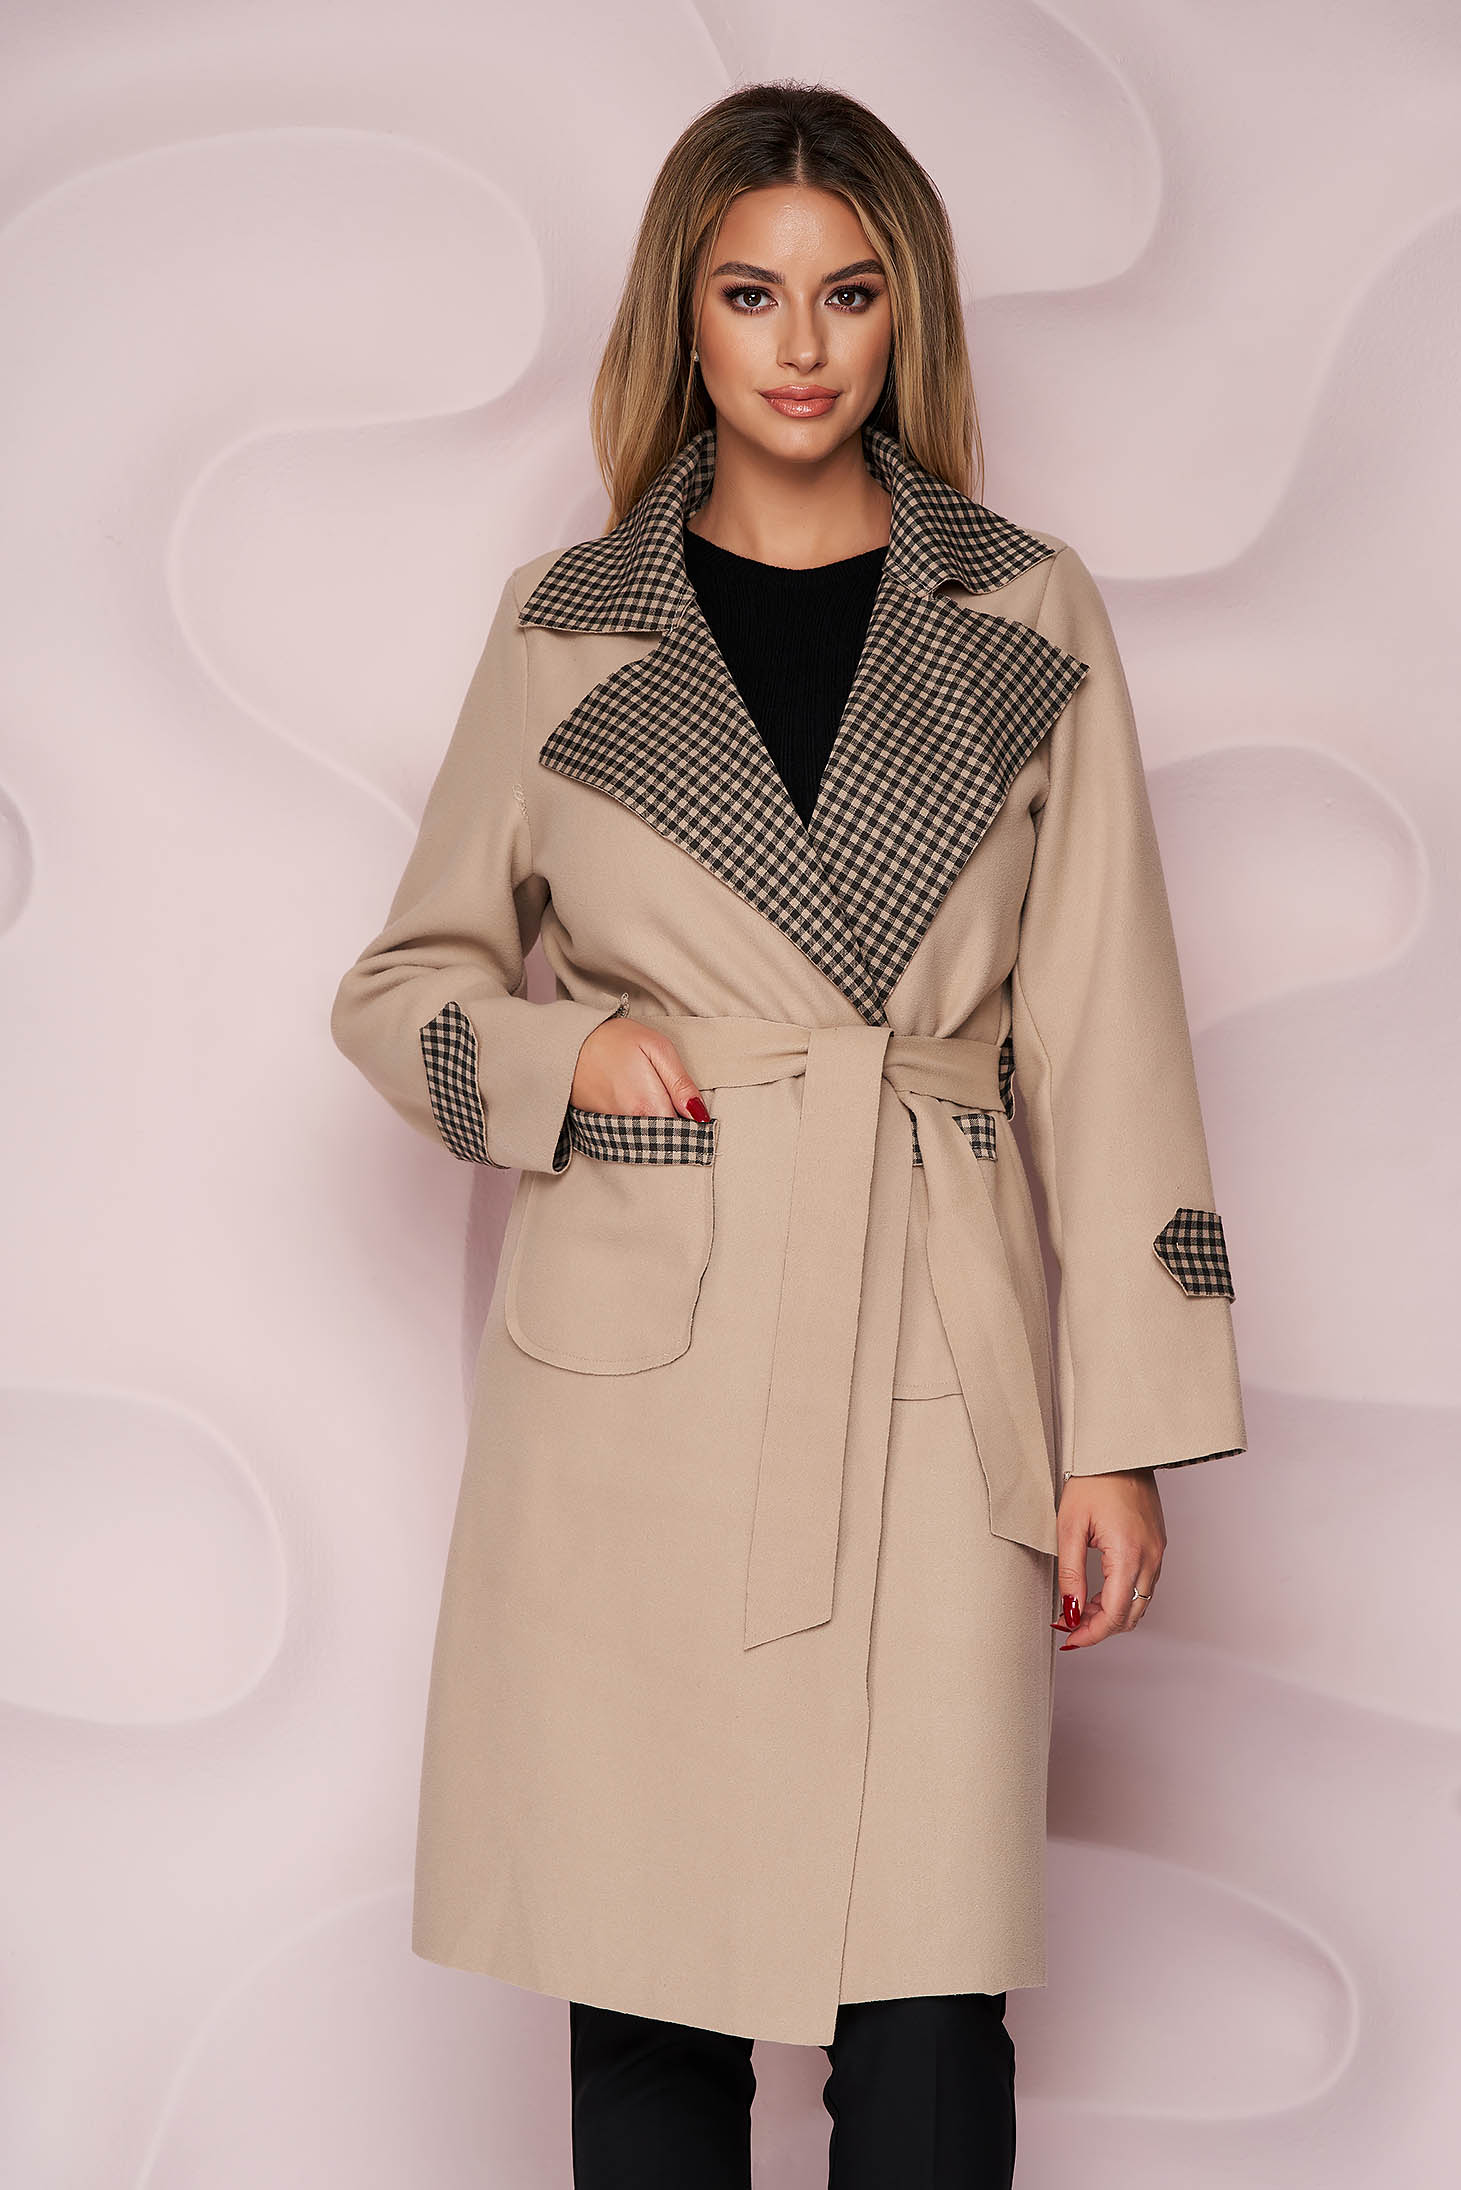 Cream trenchcoat long straight thick fabric slightly elastic fabric detachable cord with chequers